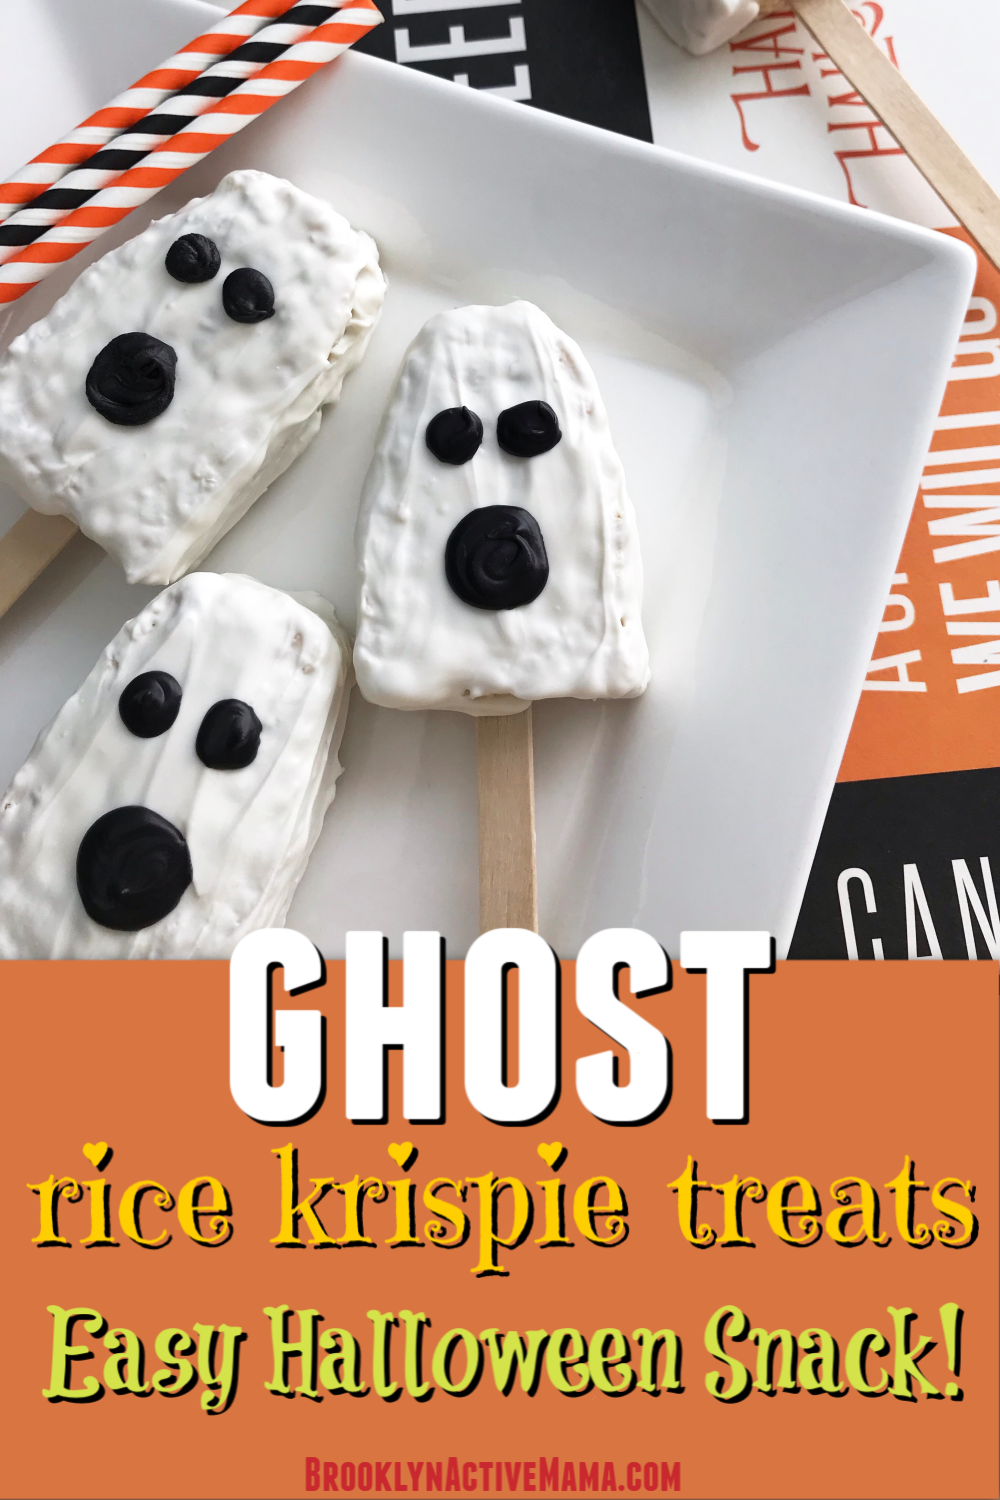 Check out these easy and fun ghost halloween snacks for kids! These treats are perfect for family friendly halloween parties and get togethers!